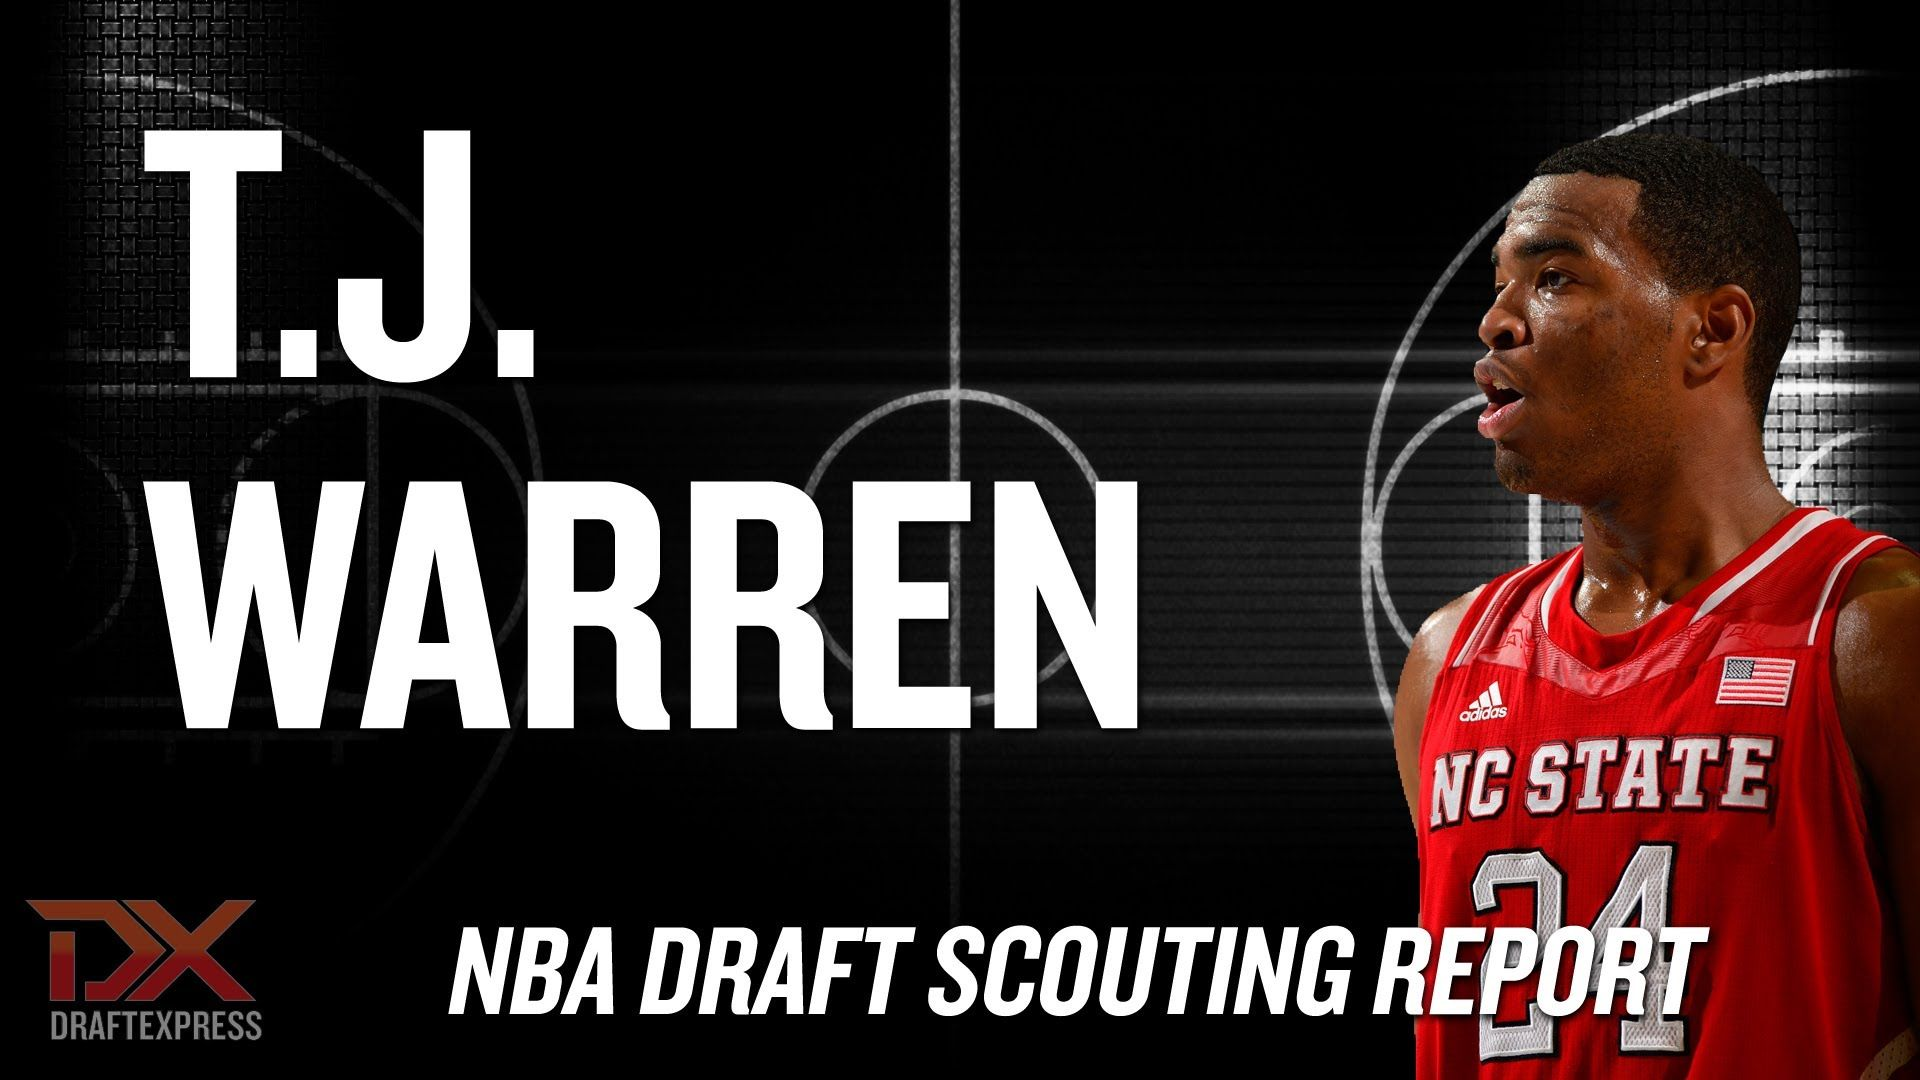 T.J. Warren 2014 Scouting Report Nba draft, Nba, Basketball